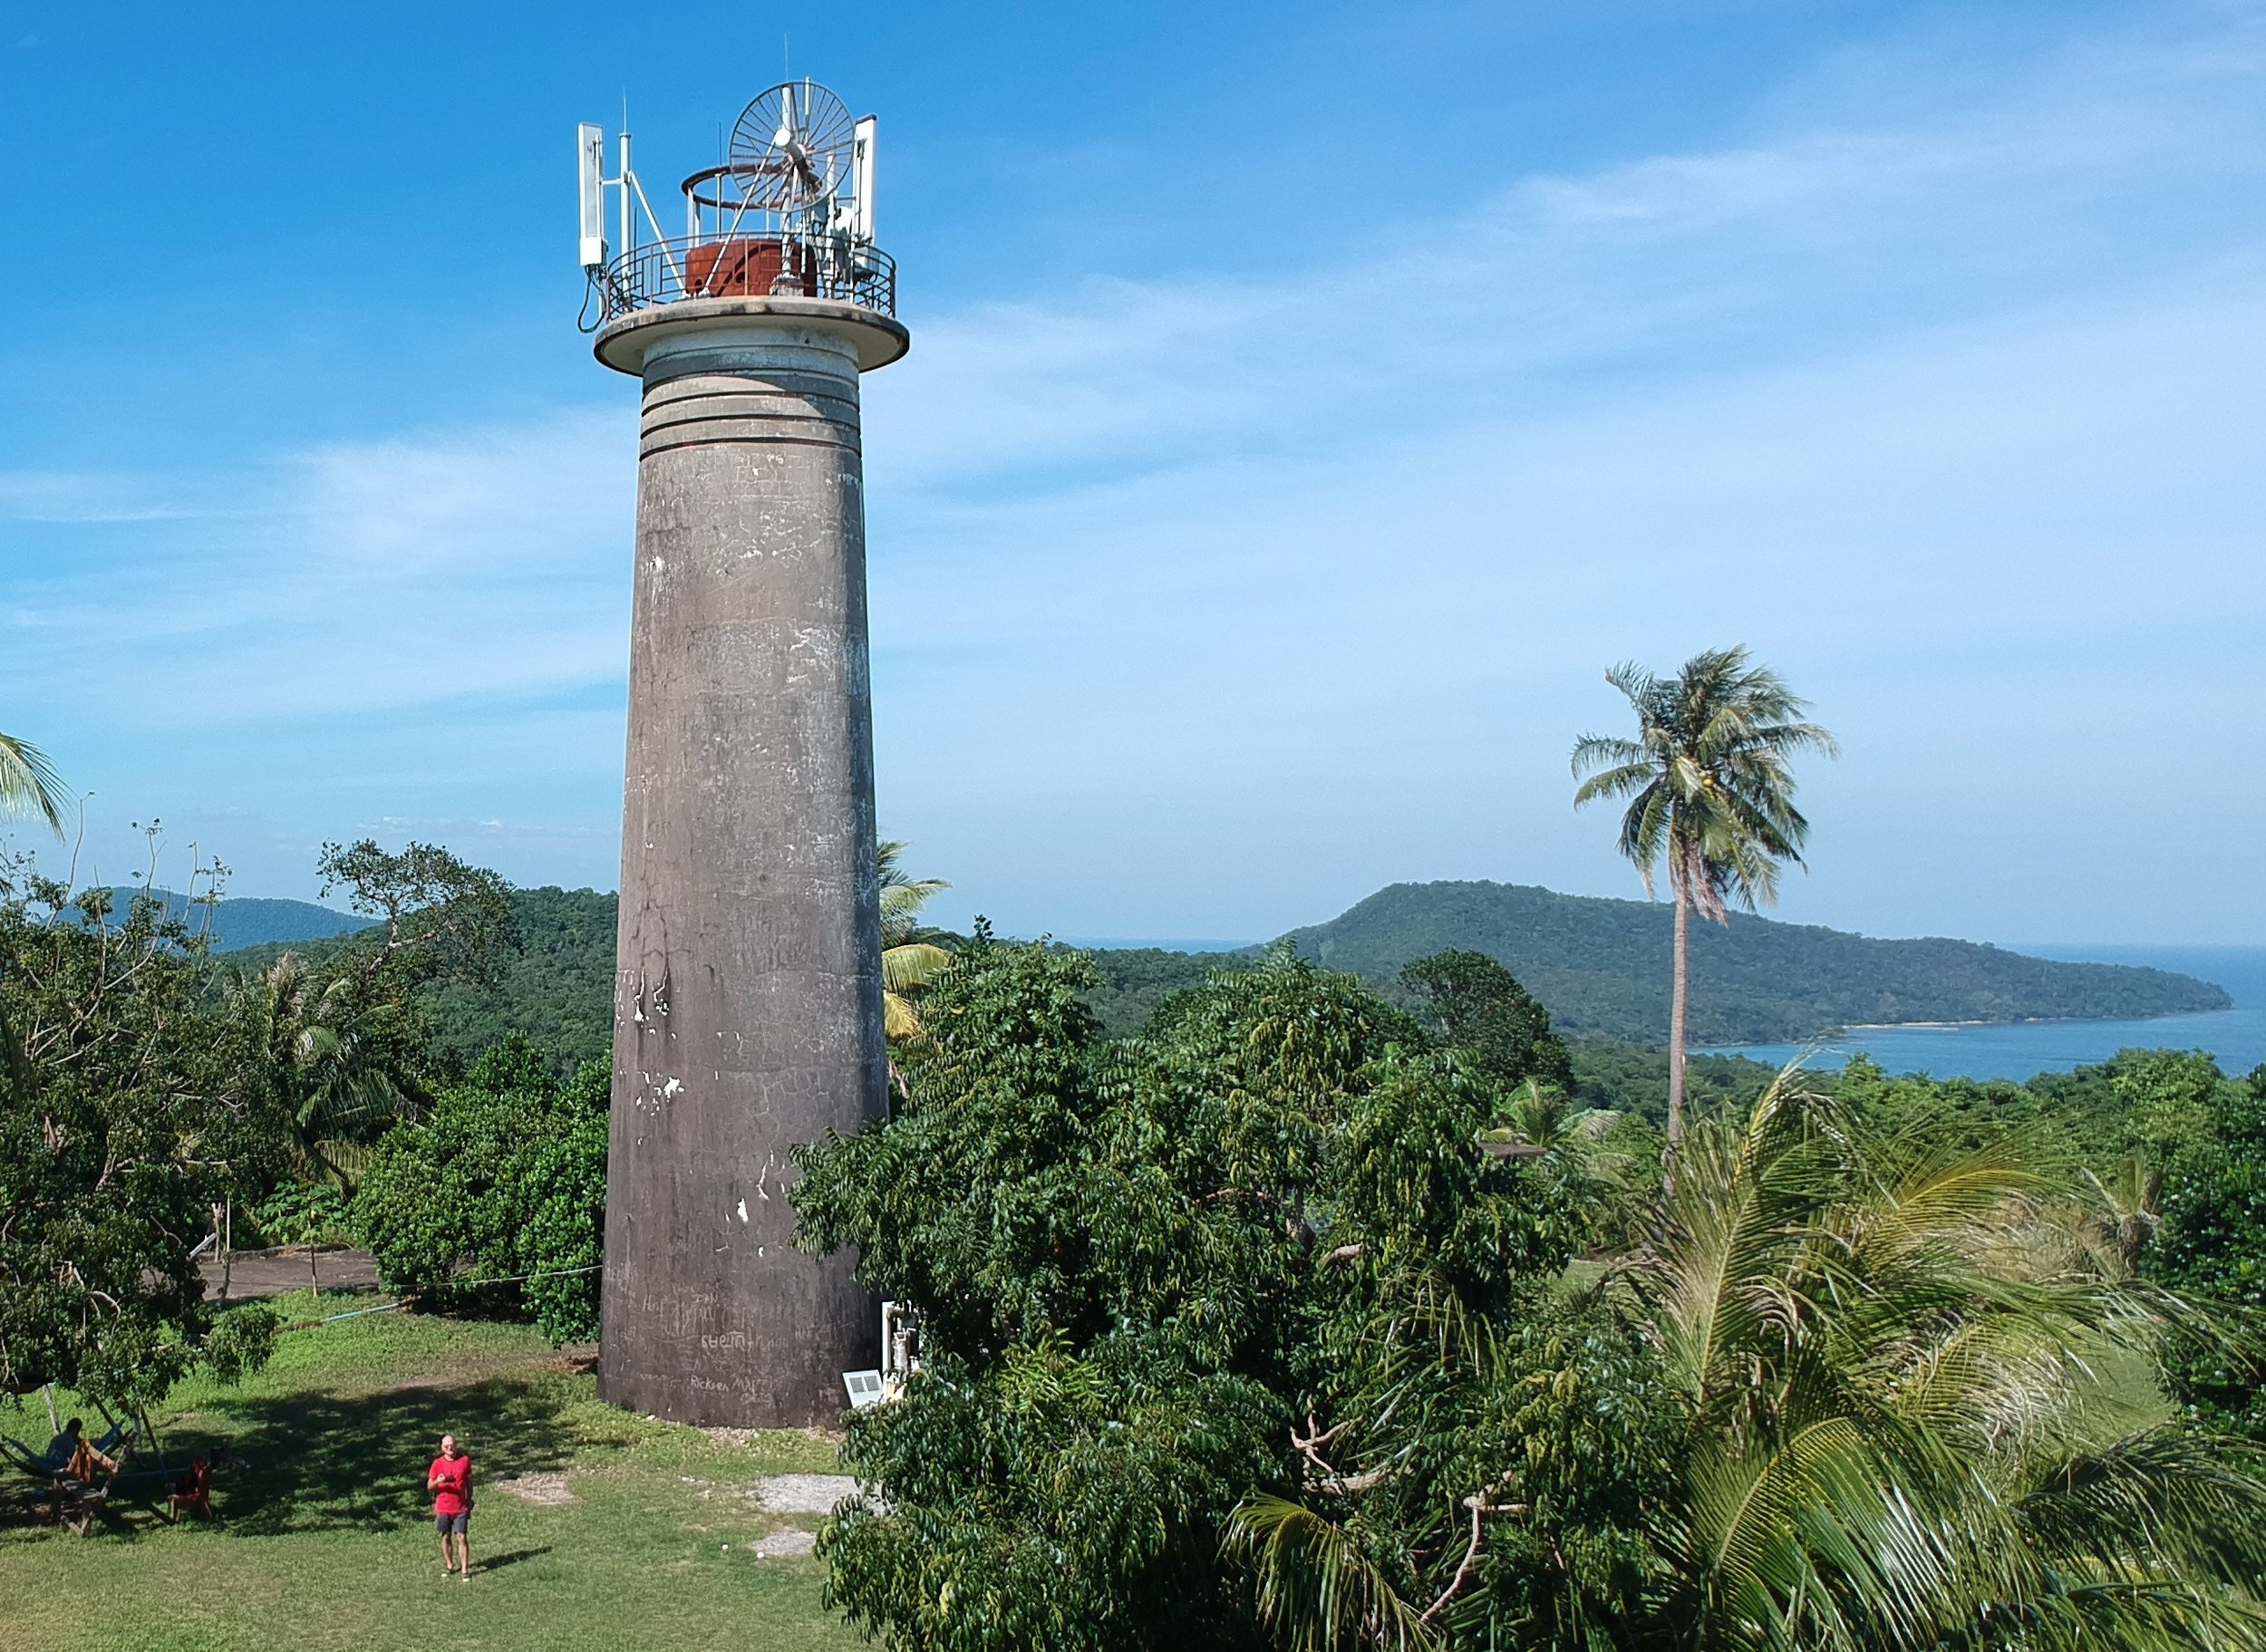 Abandoned lighthouse (18 meters high) built by the French